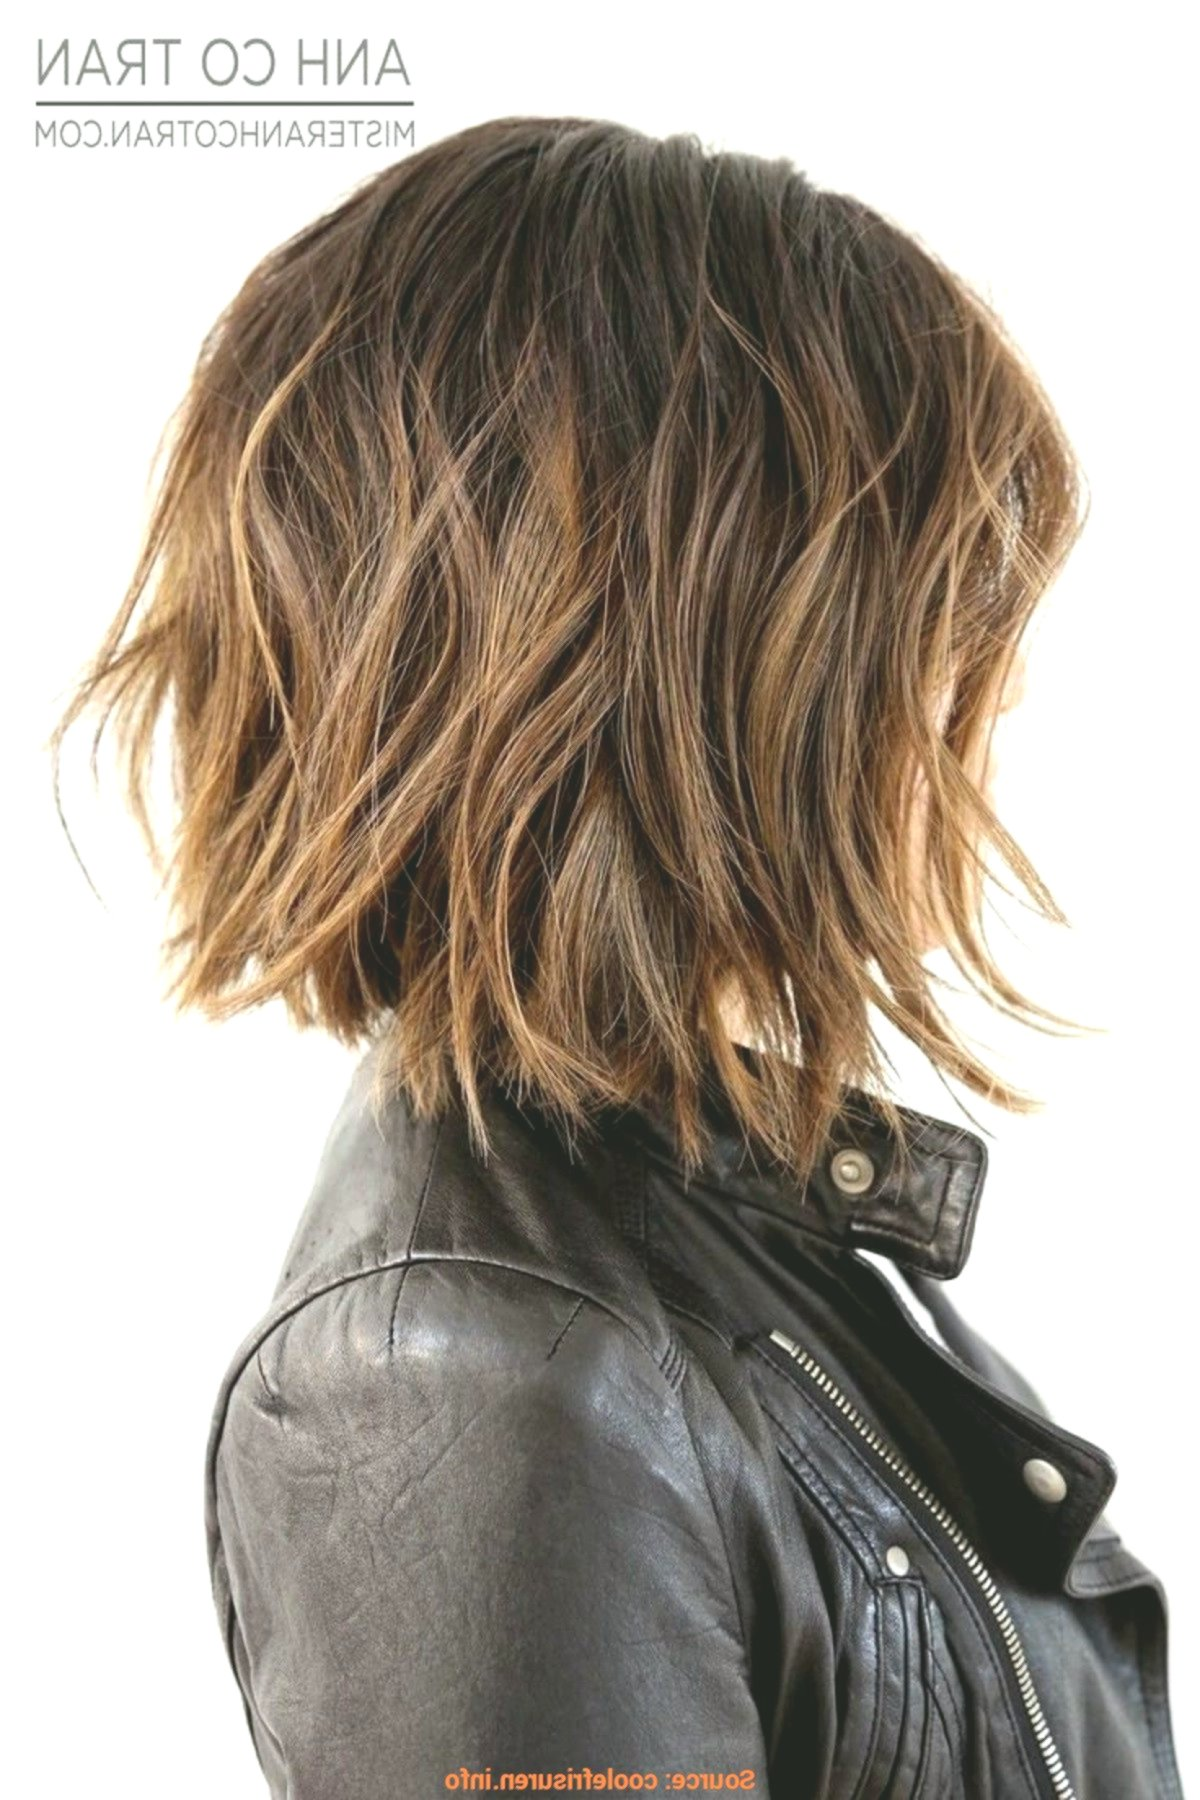 Inspirational Short Hairstyles With Glasses Concept-Modern Short Hairstyles With Glasses Decoration